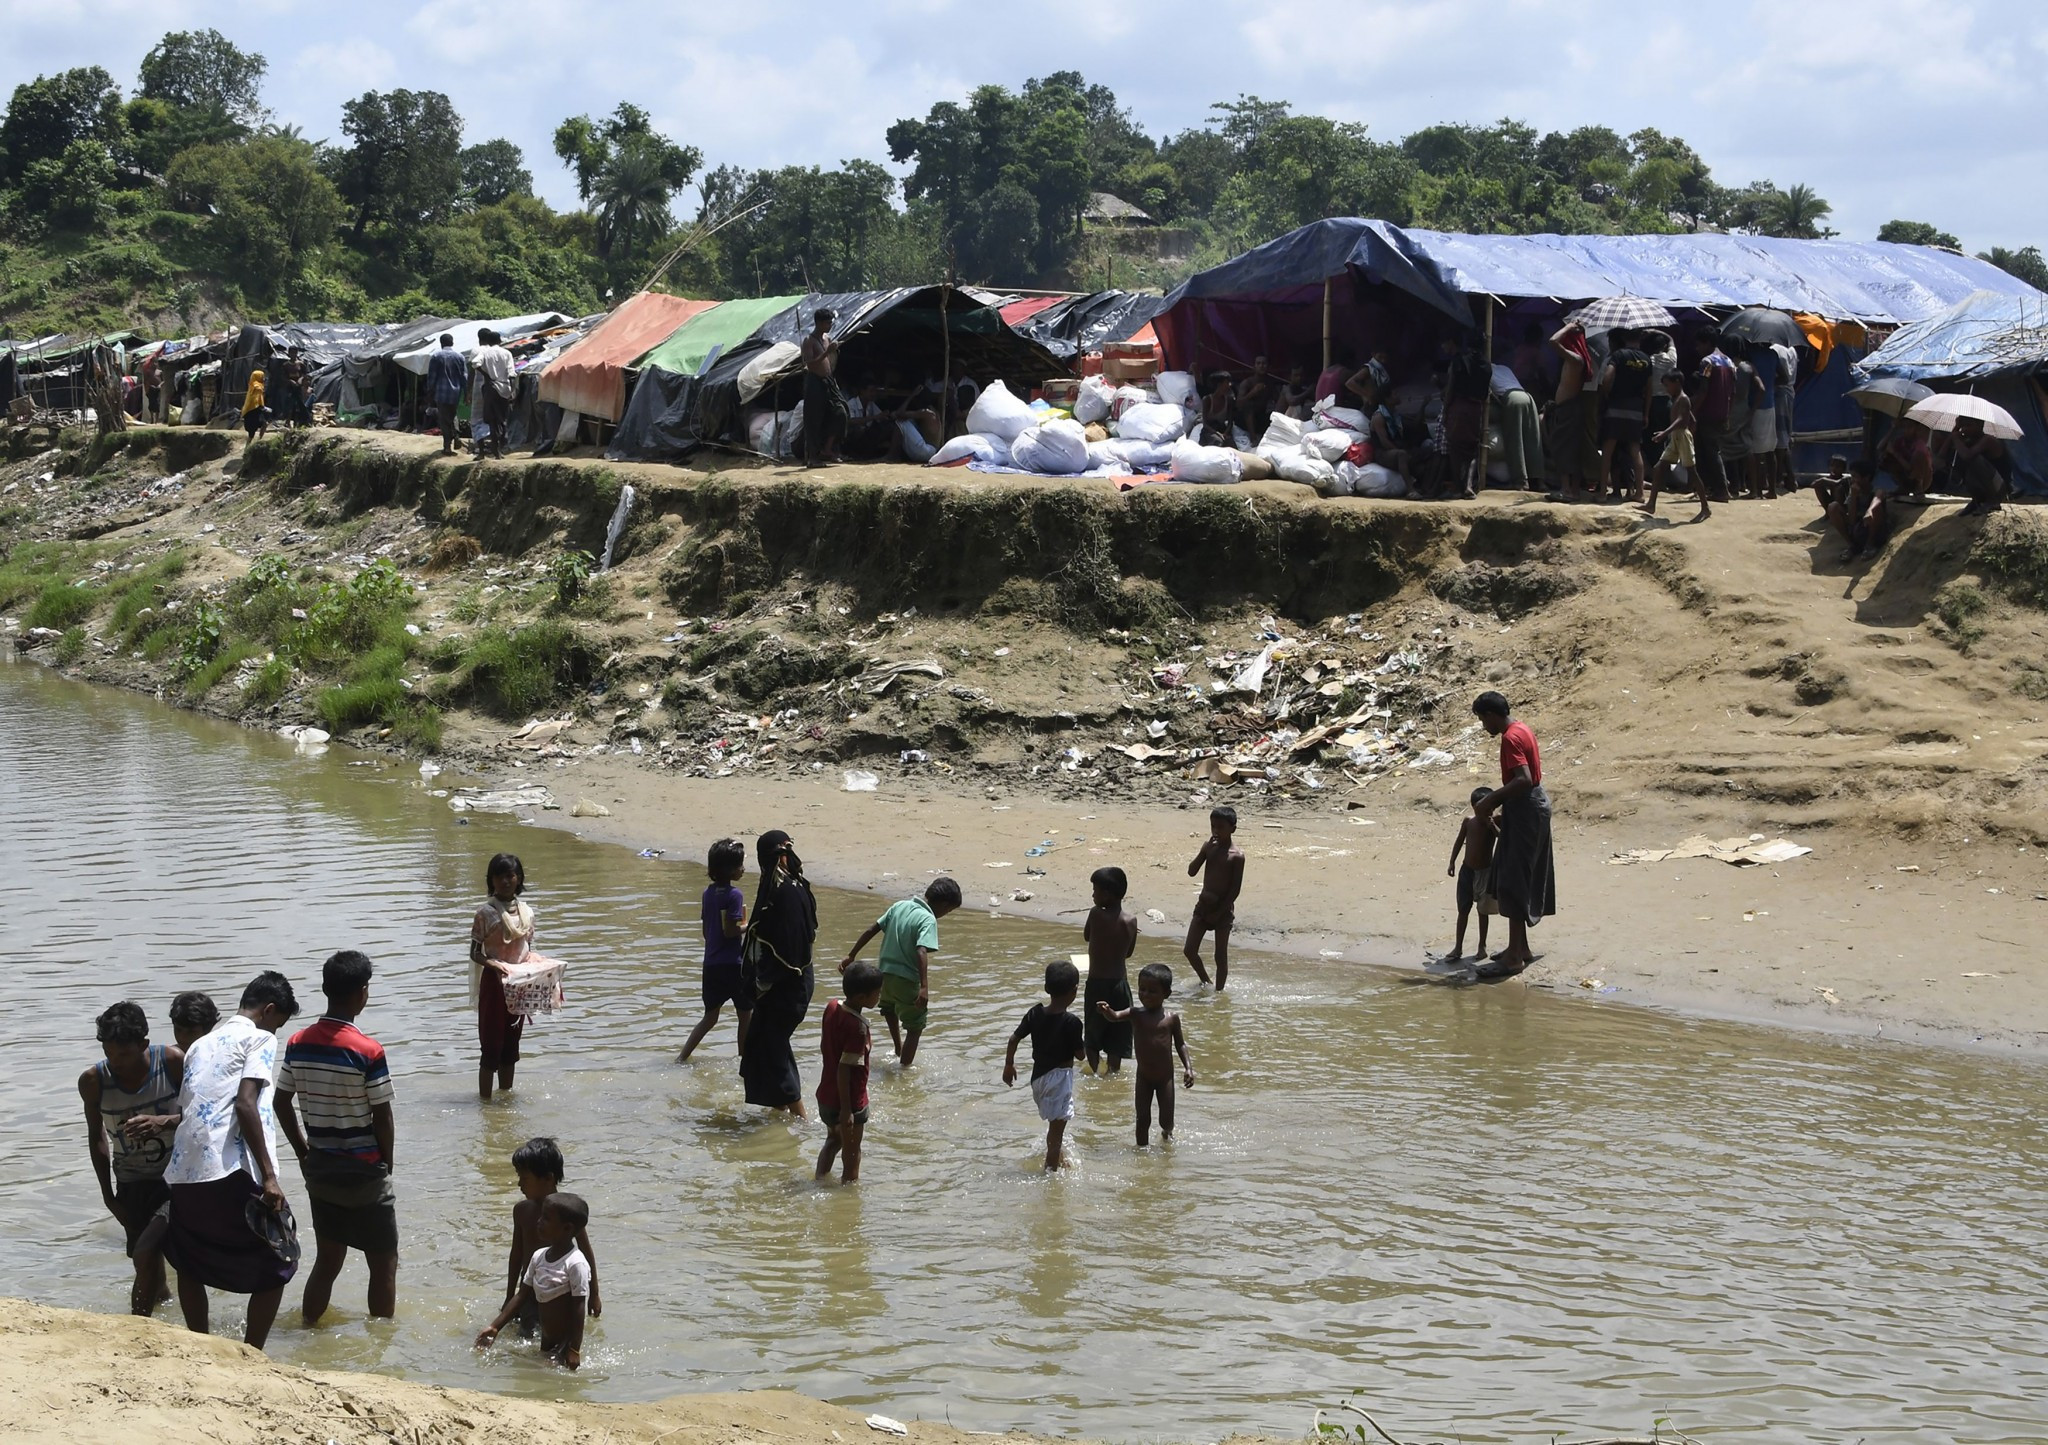 Thousands of Rohingya Muslims have fled into neighbouring states ©Getty Images